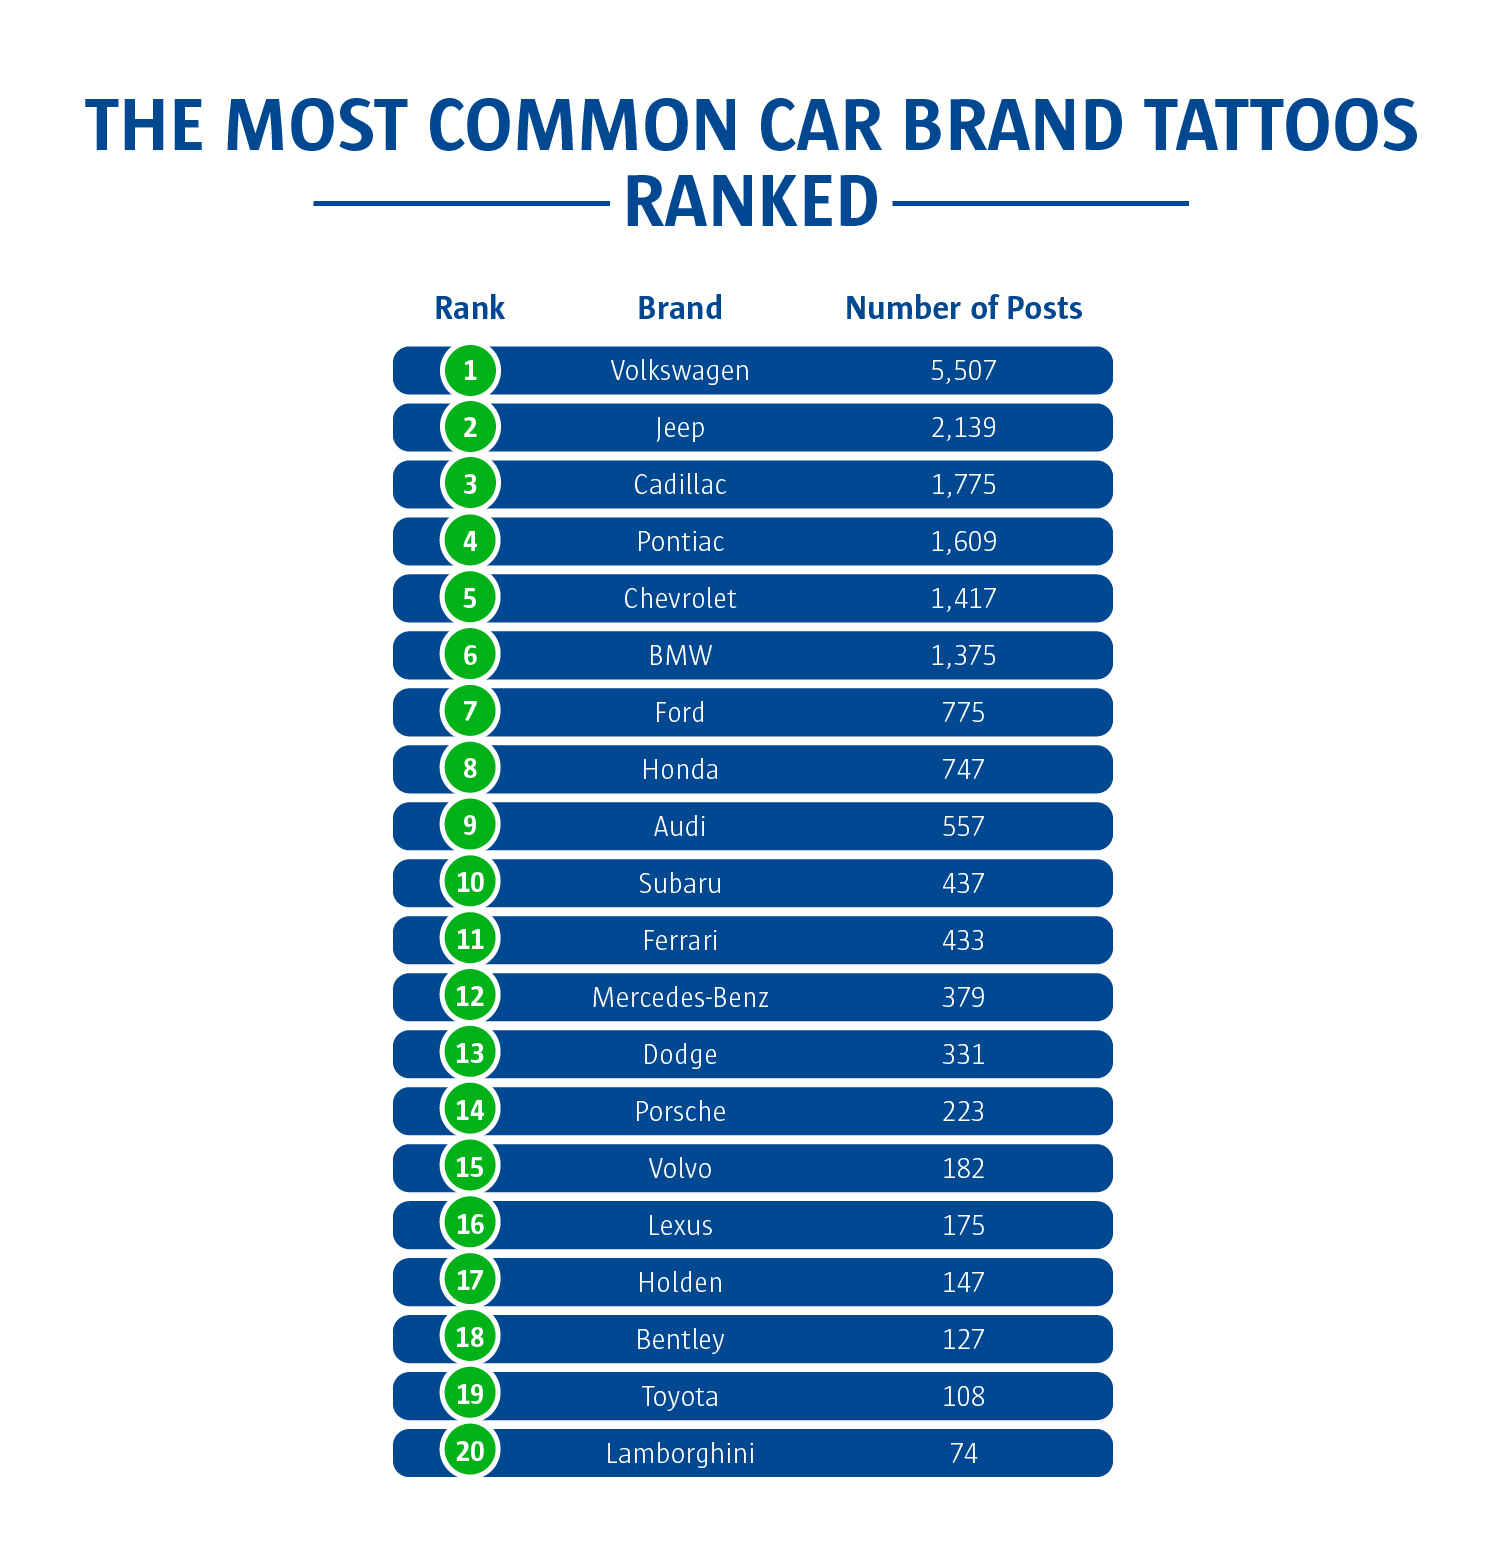 The most common car brand tattoos ranked